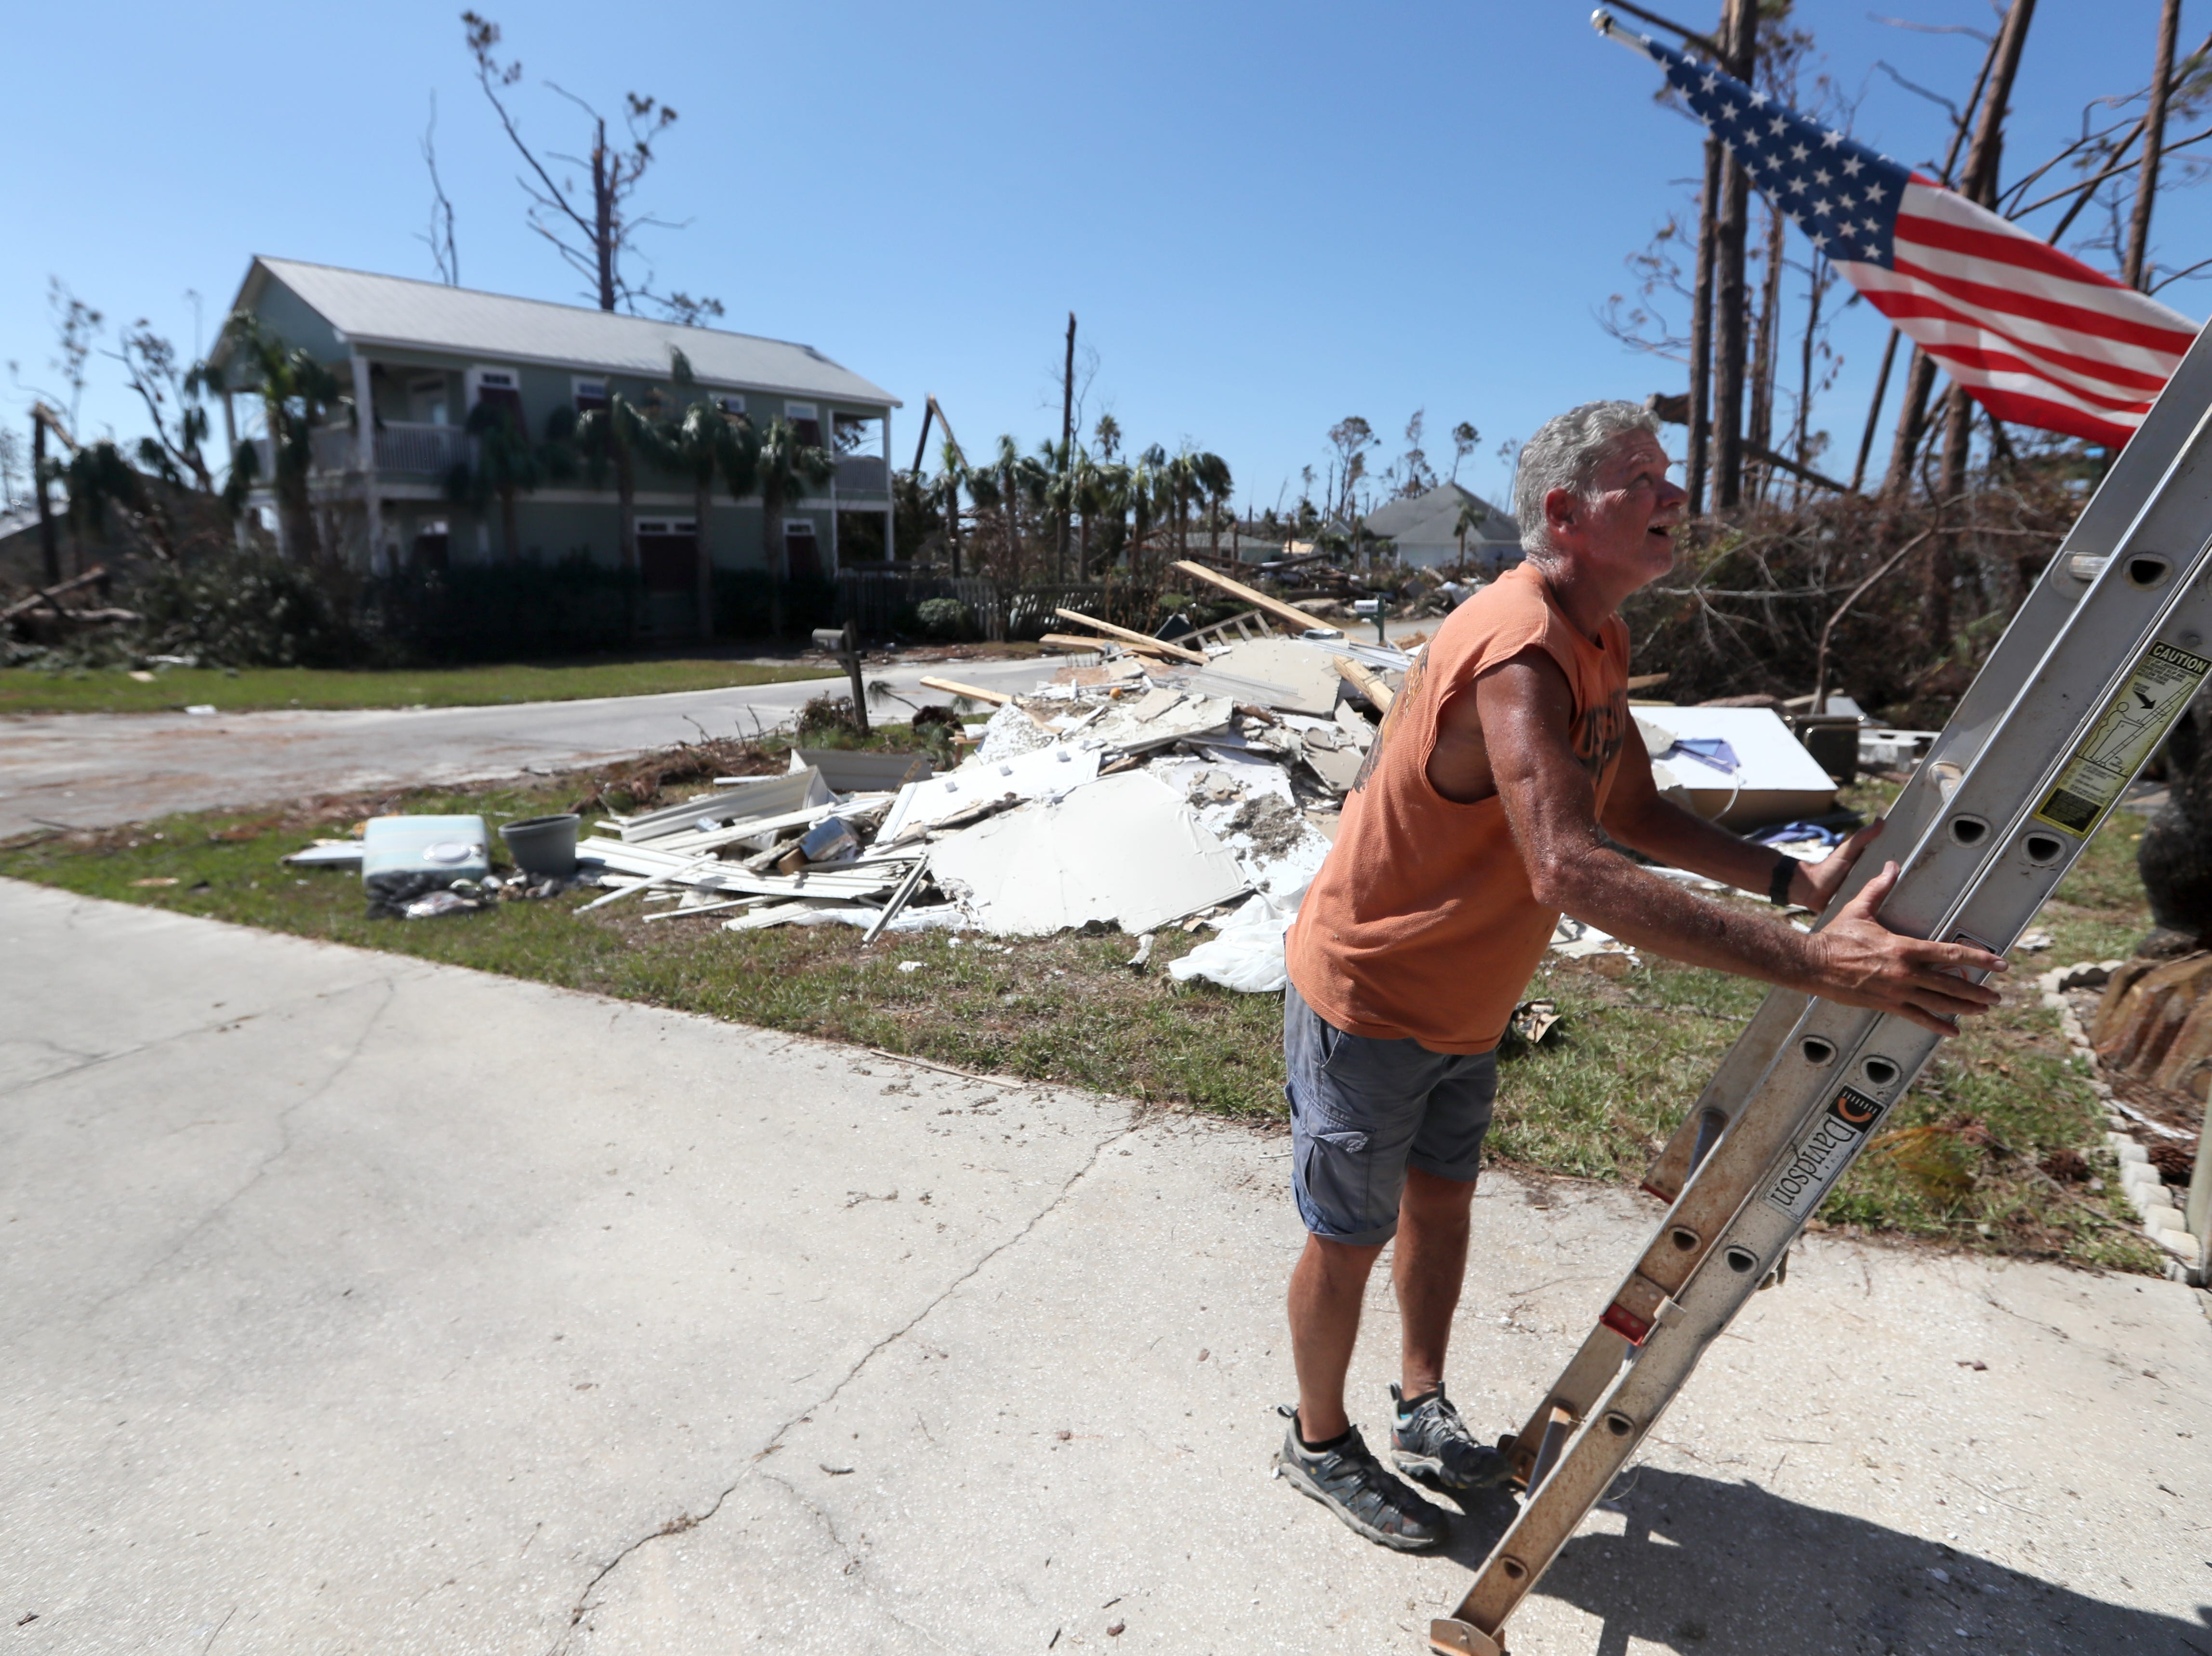 Mexico Beach resident Rick Barnes adjusts a ladder which he now uses to access what is left of his second-floor home, which was left destroyed on Wednesday, Oct. 17, 2018, one week after Hurricane Michael ripped through the coastal Florida town.